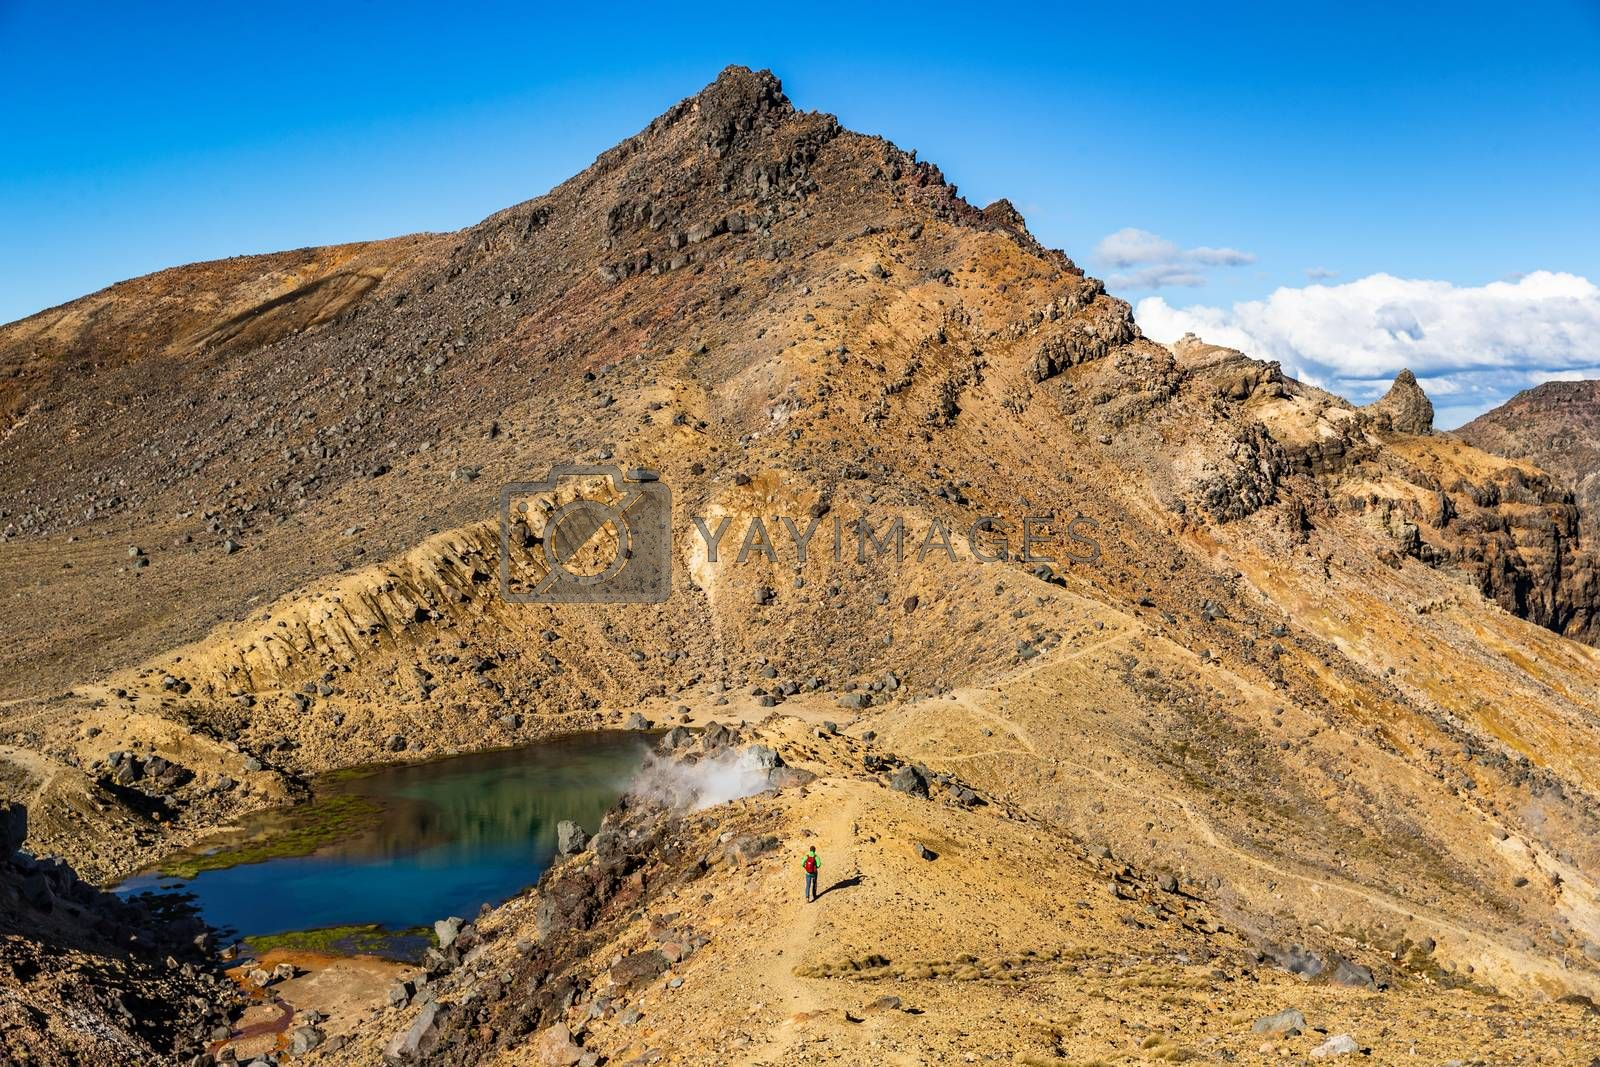 New Zealand Tongariro Alpine Crossing National Park. Tramping tramper hiker man walking on famous destination in NZ. Popular tourist hiking hike hero view of landscape by Maridav